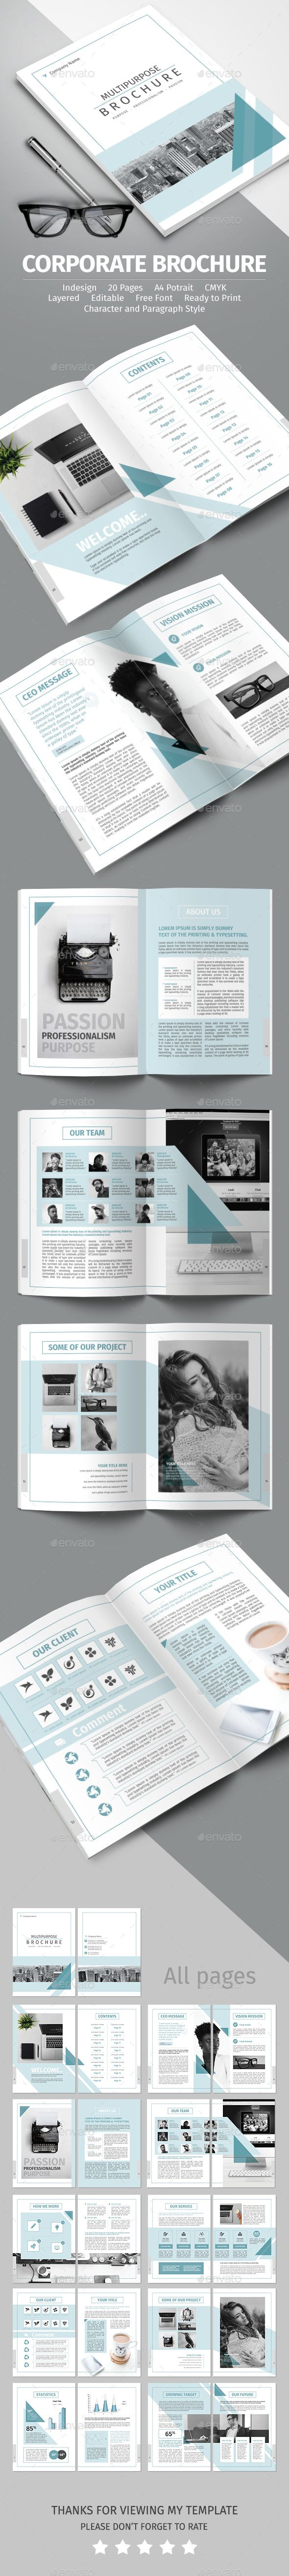 20 Pages Corporate Brochure Template Vector EPS, InDesign INDD. Download here: http://graphicriver.net/item/corporate-brochure/15765908?ref=ksioks